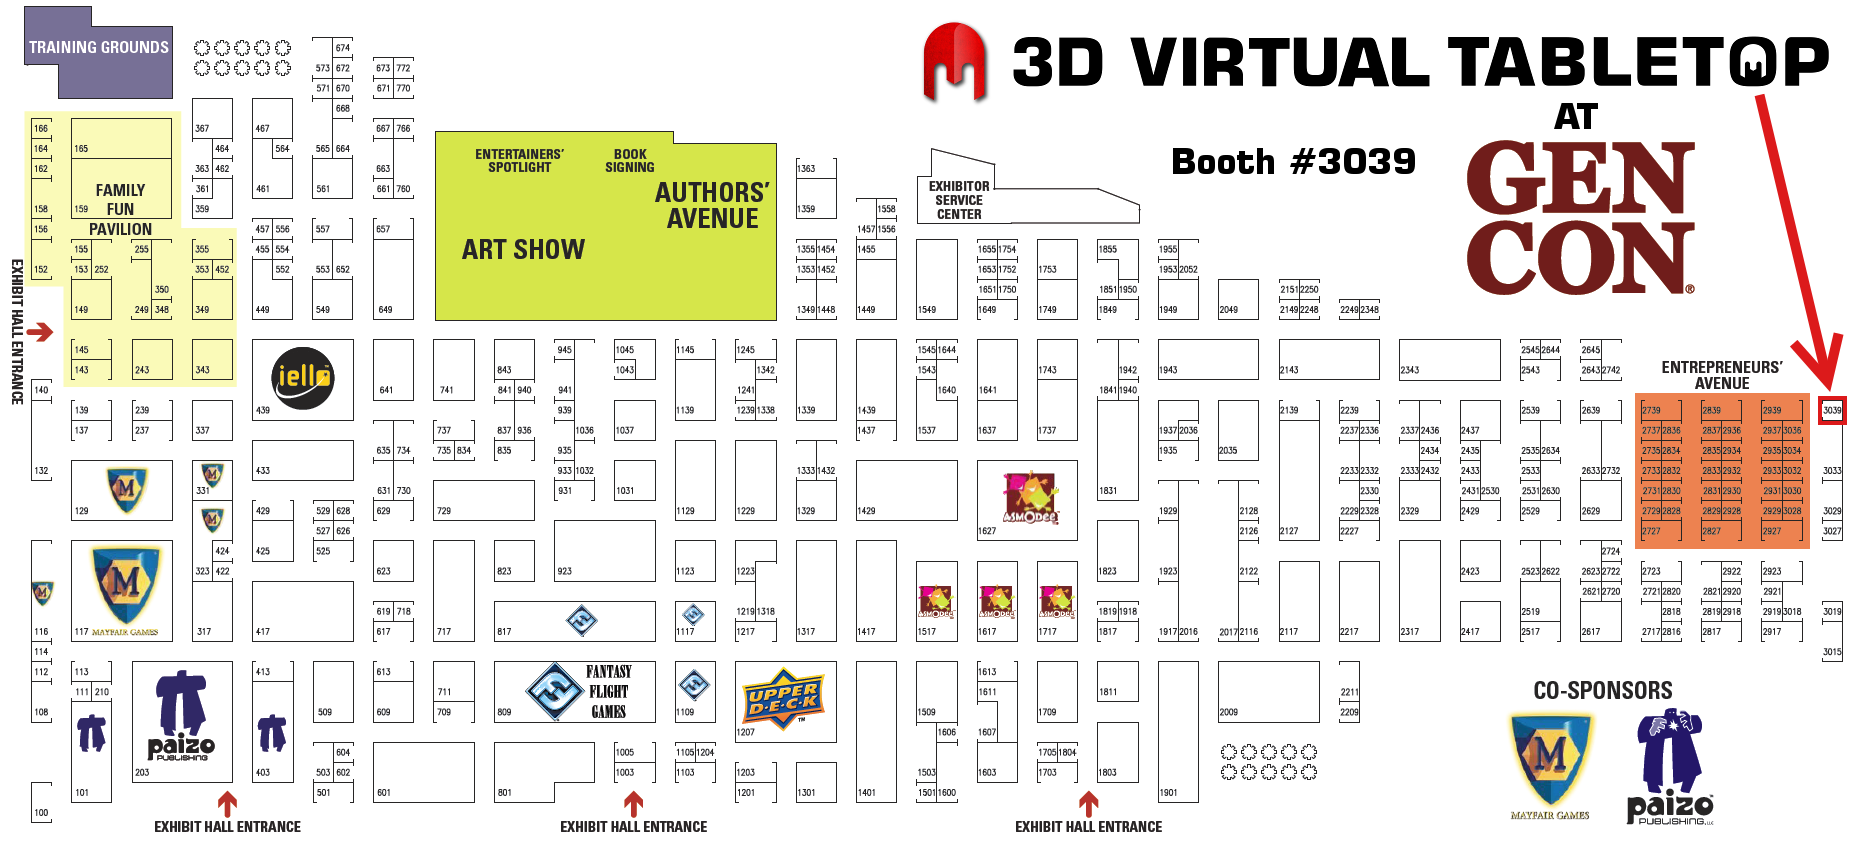 3D Virtual Tabletop Booth Location #3039 at Gen Con